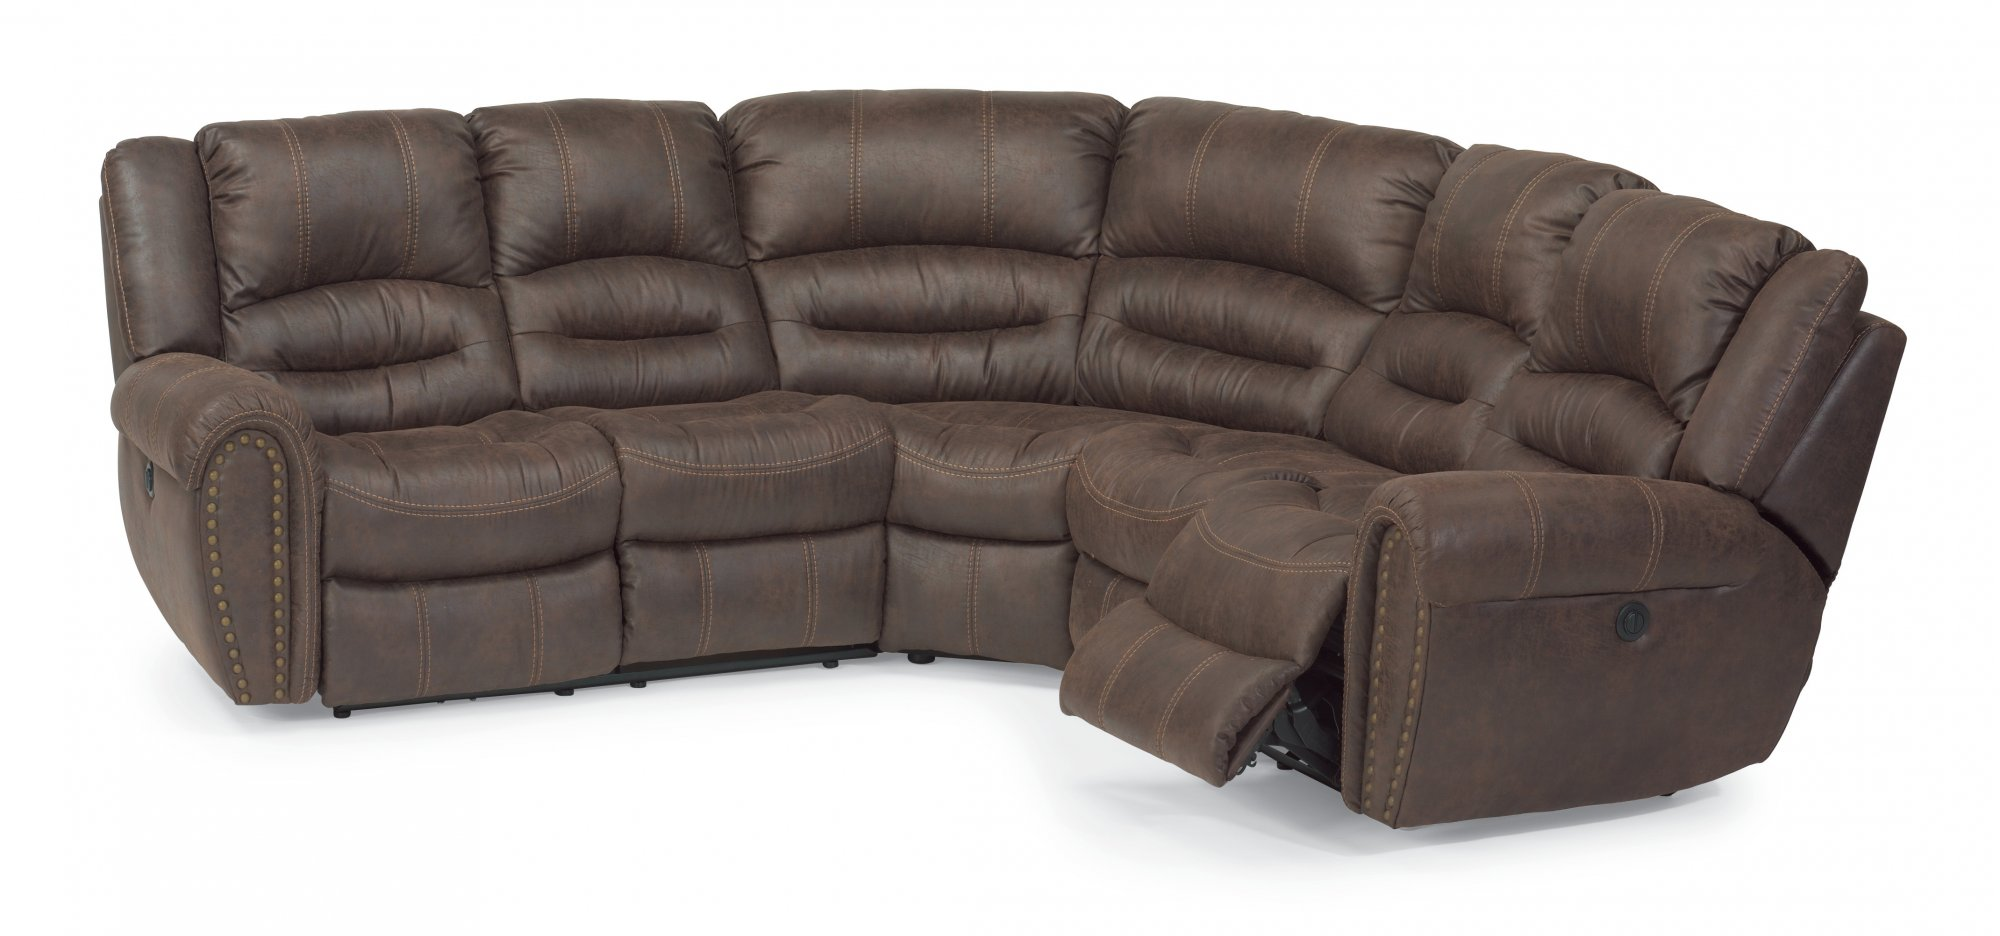 Sectional Couches And Sofas Flexsteel Sectionals - Sofa leather and fabric combined